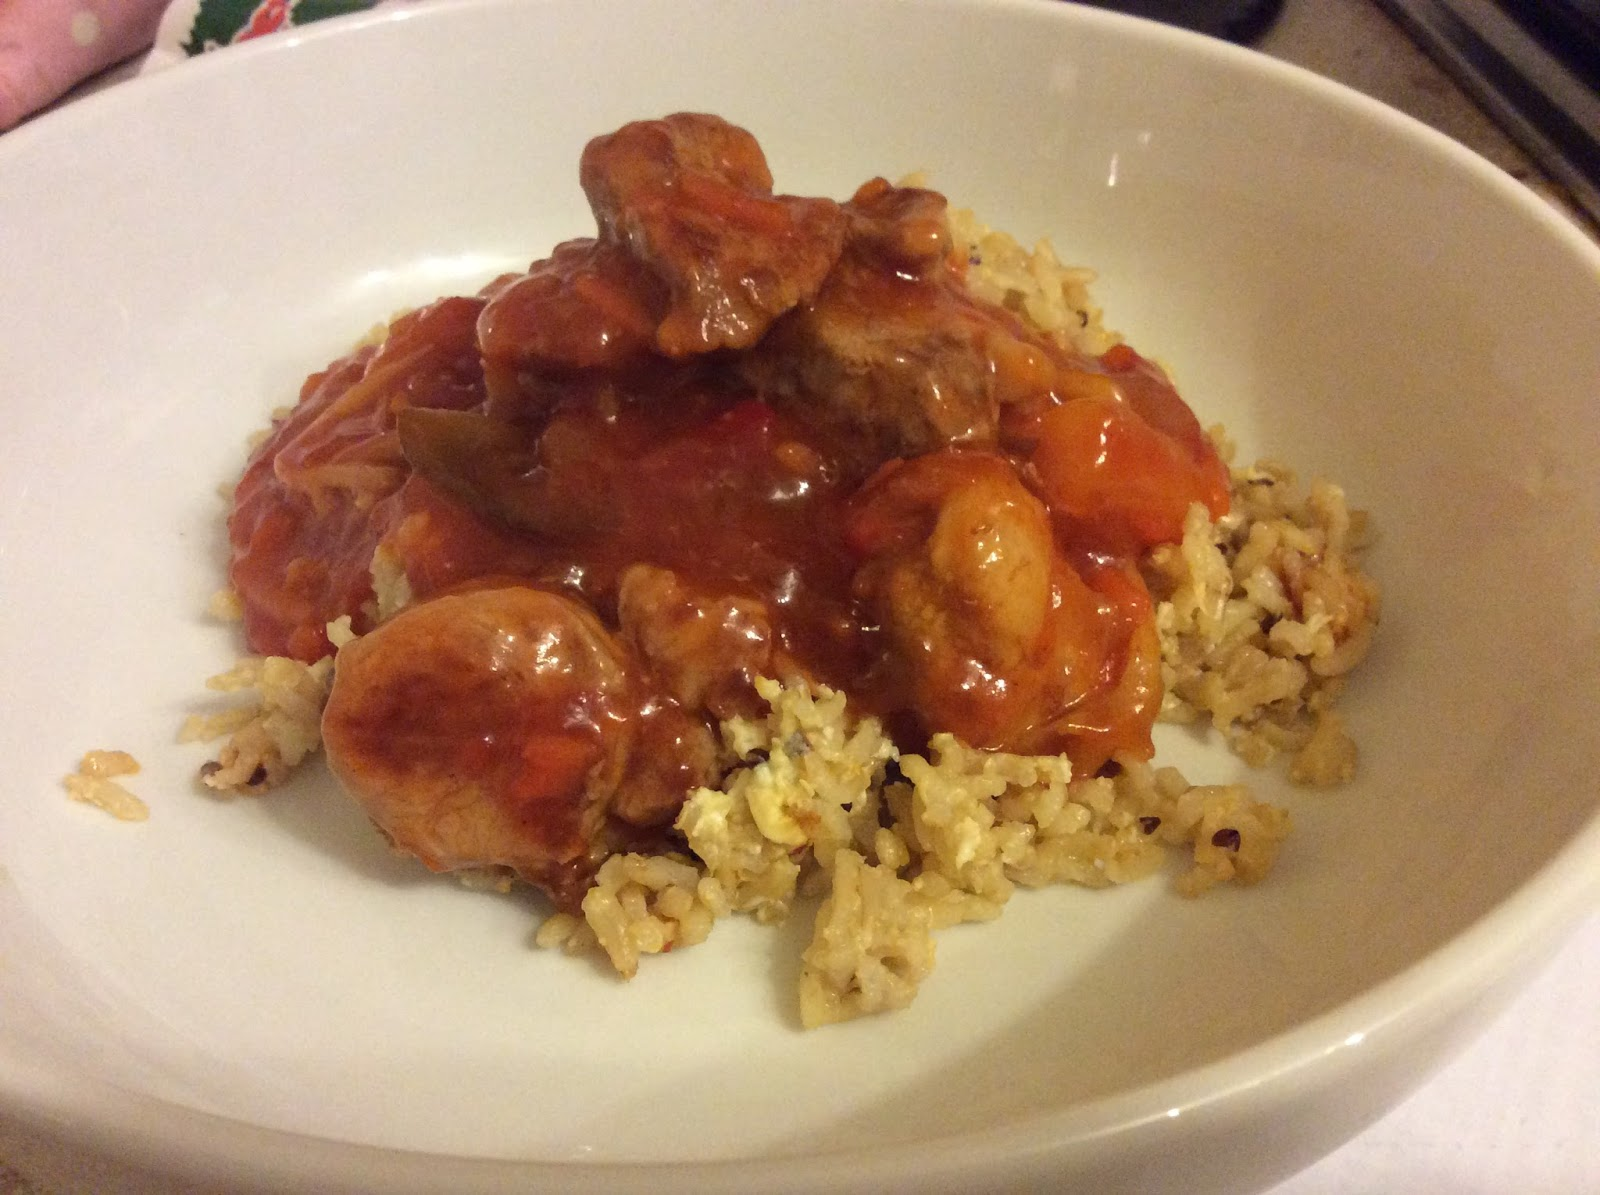 sweet and sour pork with egg-fried brown rice